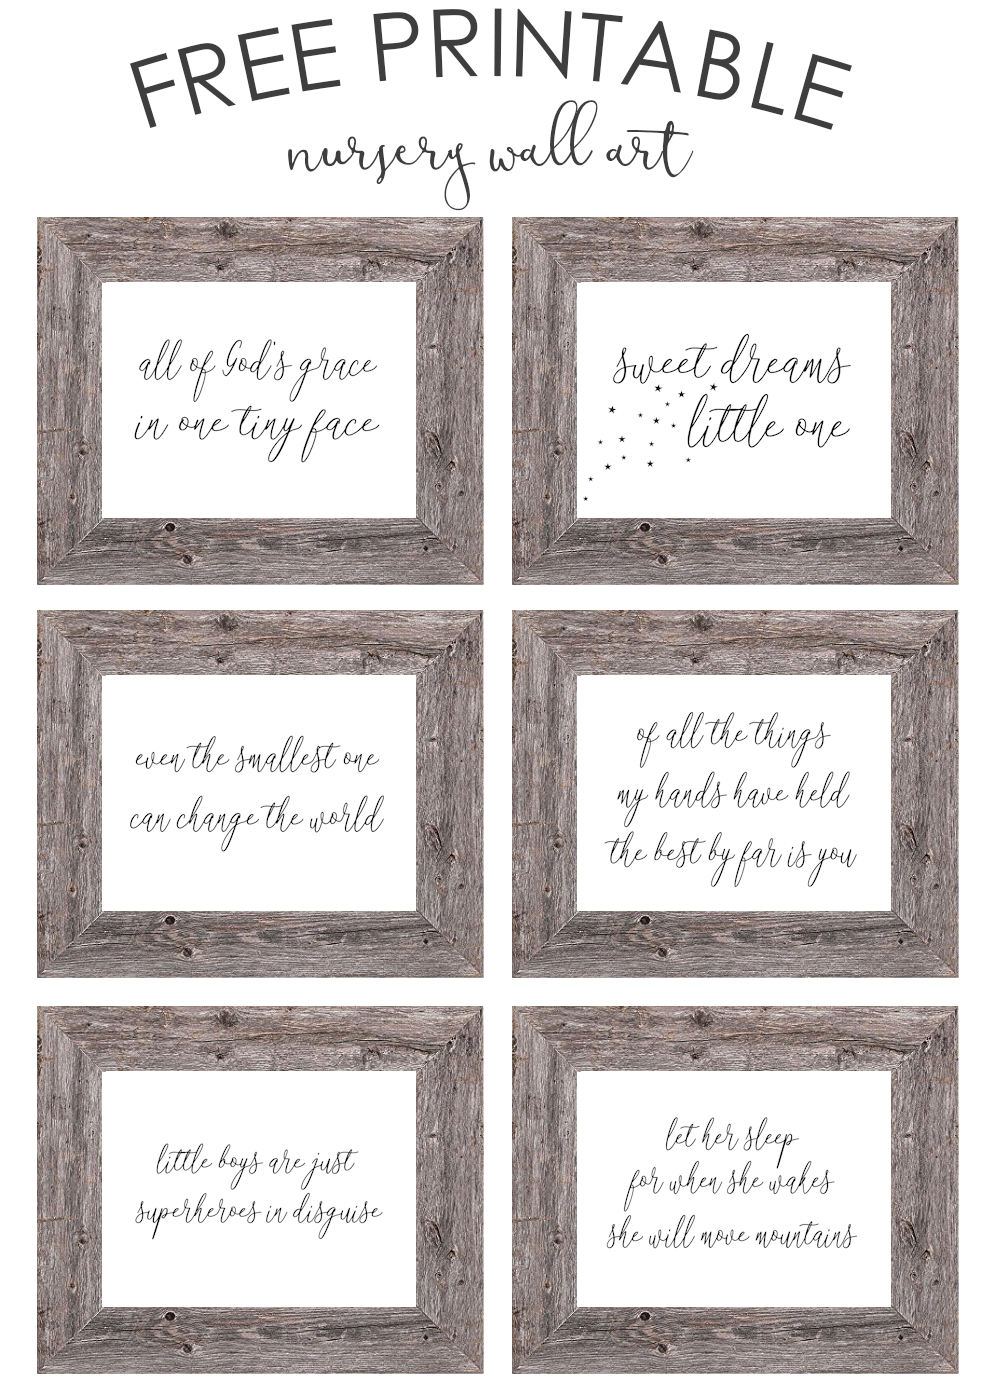 image regarding Free Printable Nursery Art named No cost Printable Nursery Wall Artwork - The Woman Artistic